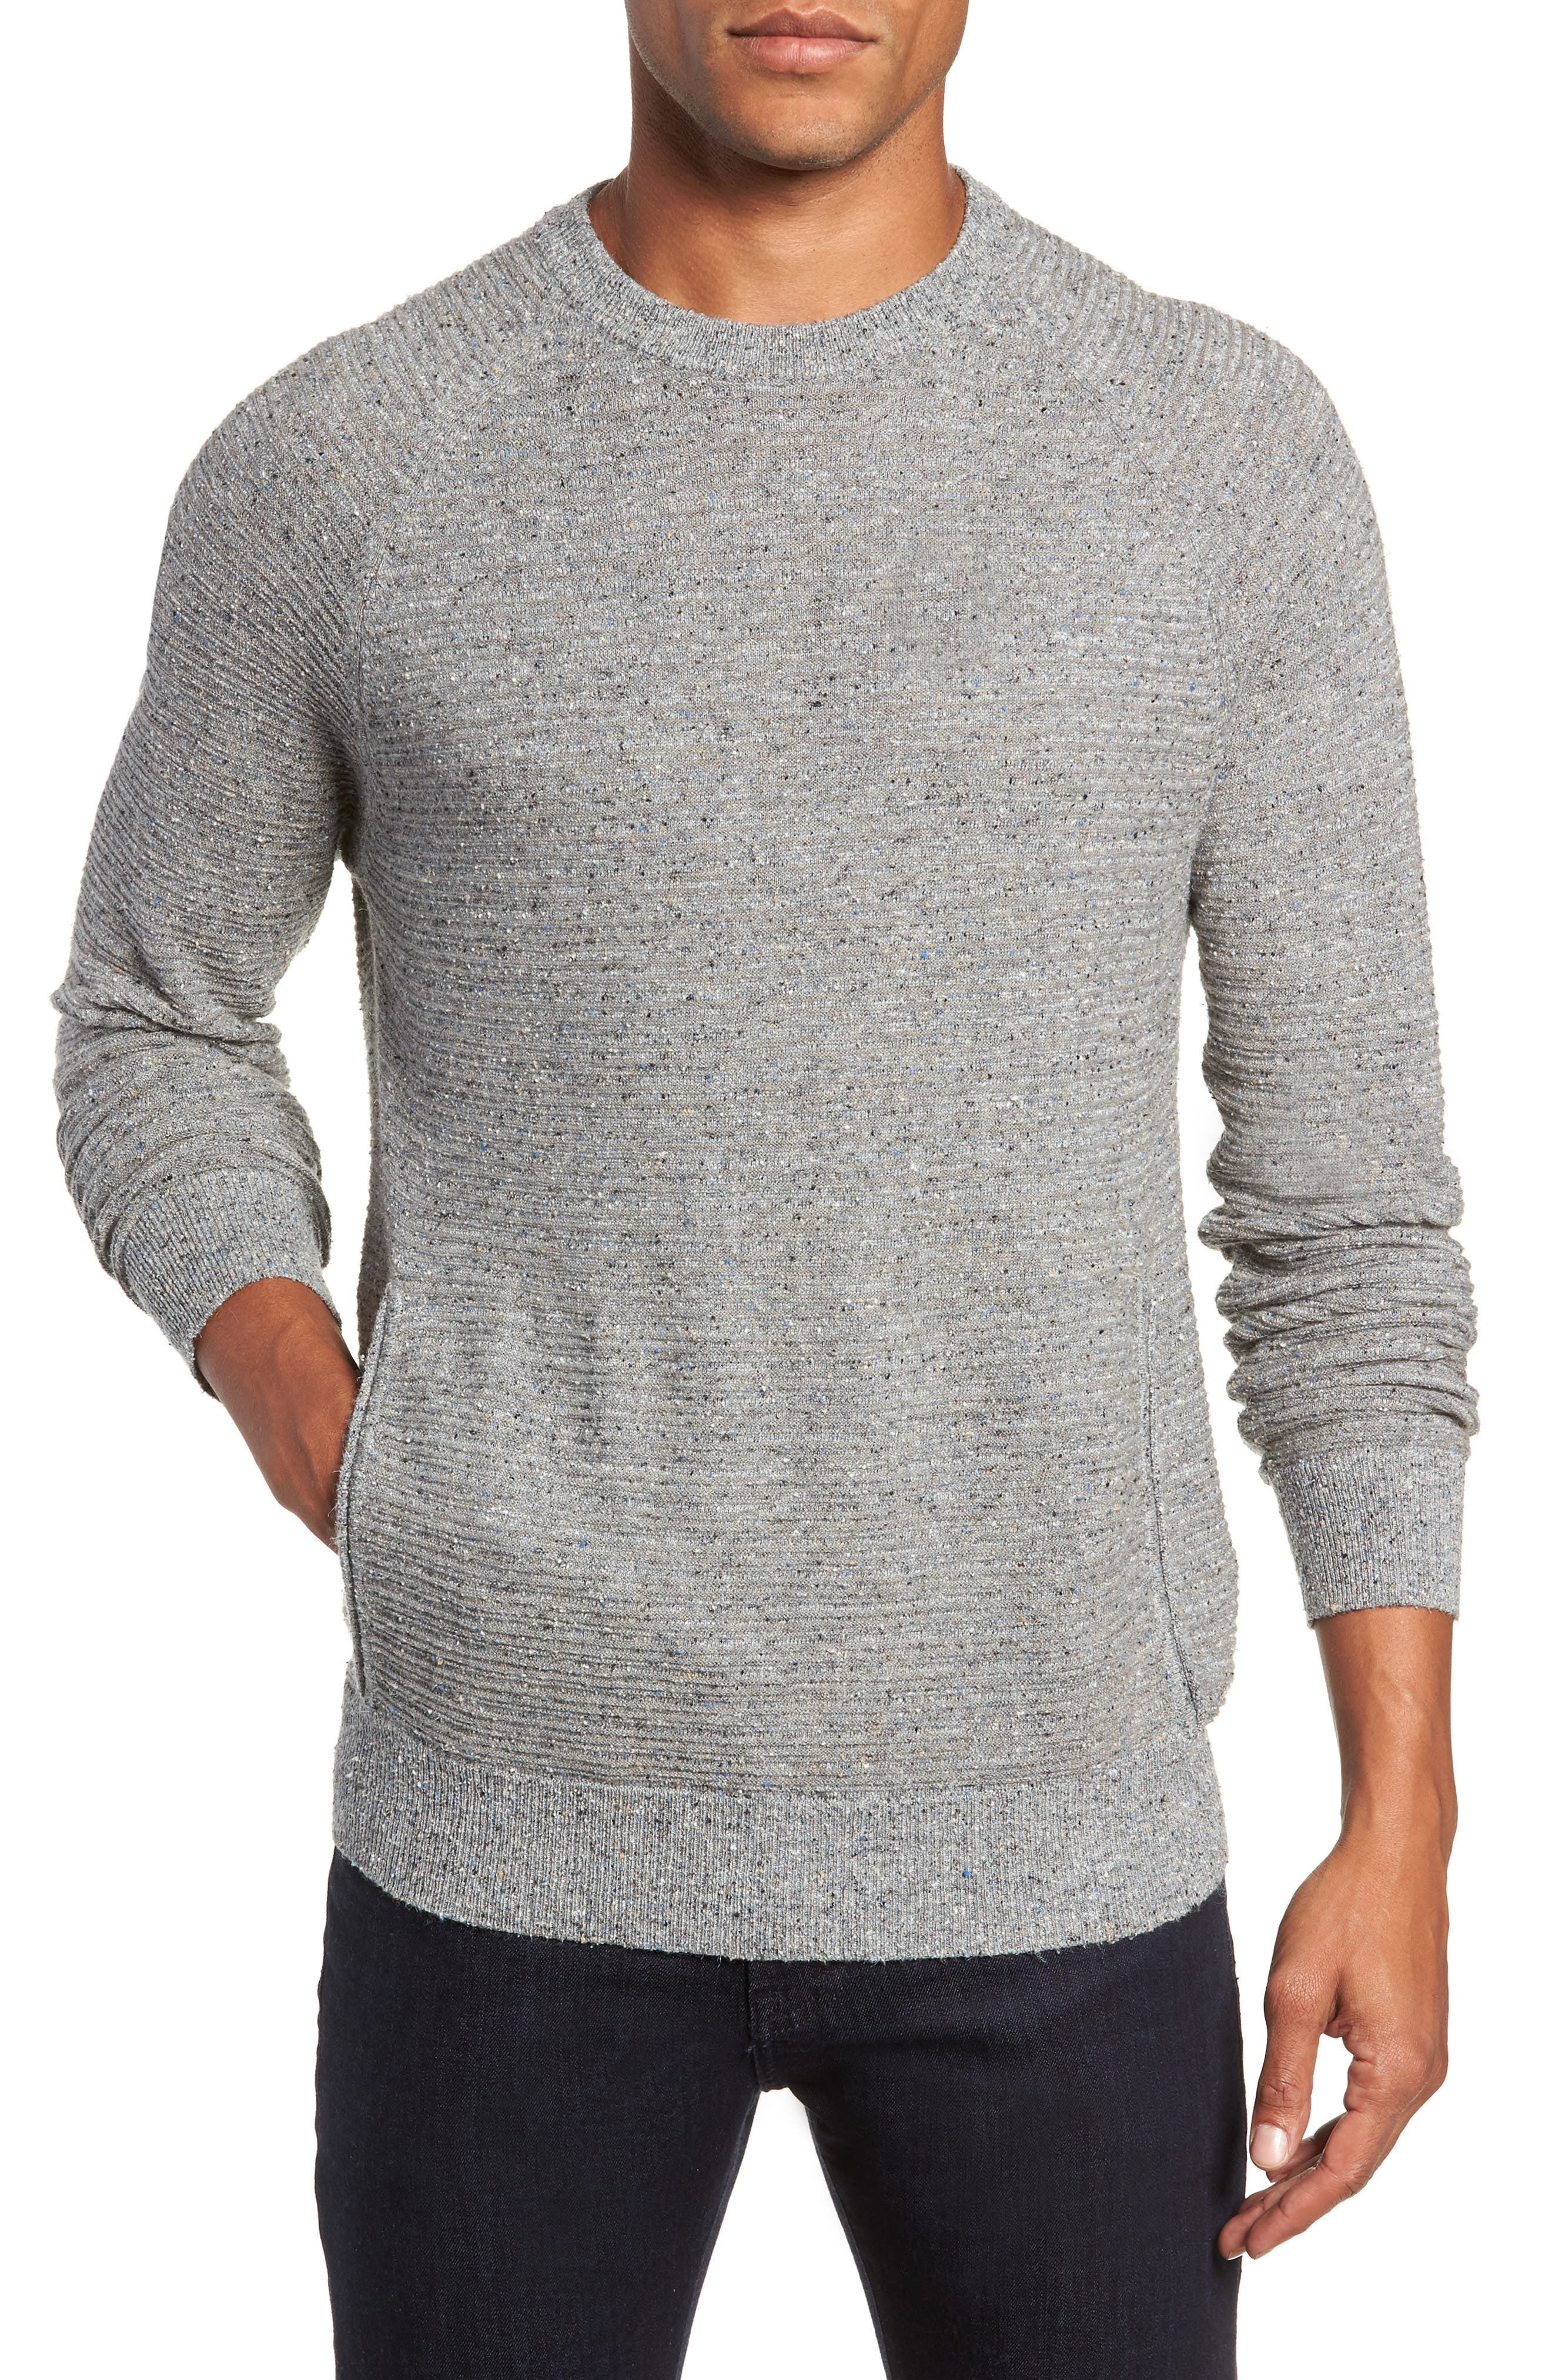 Speckle Stripe Sweater,                             Main thumbnail 1, color,                             GREY MIX